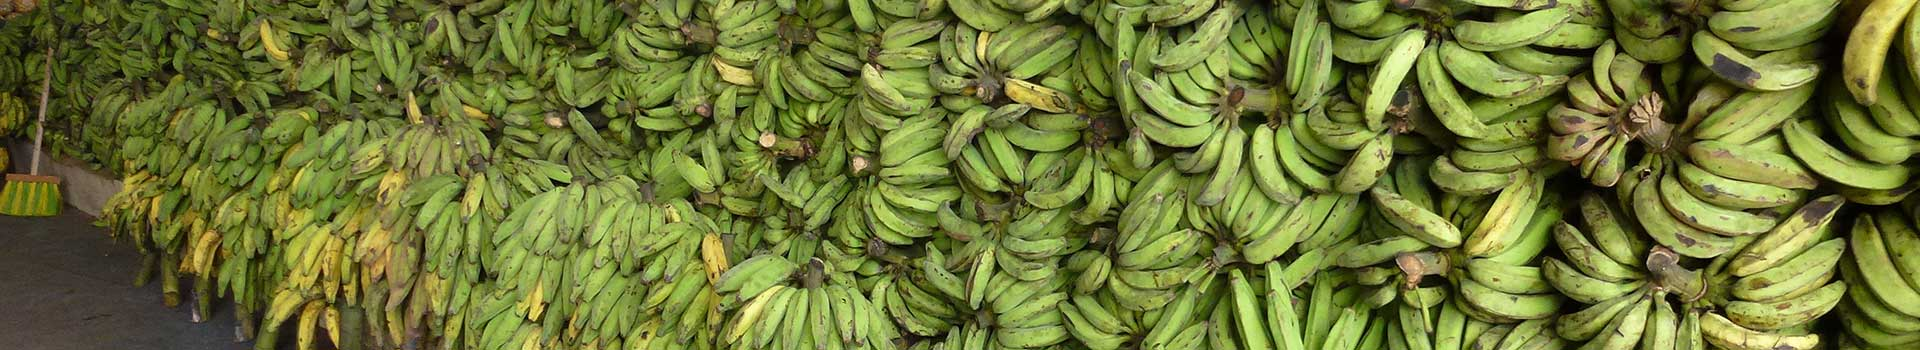 advocaat Internationale handel bananen fruit agf international trade fruit bananas noten nuts